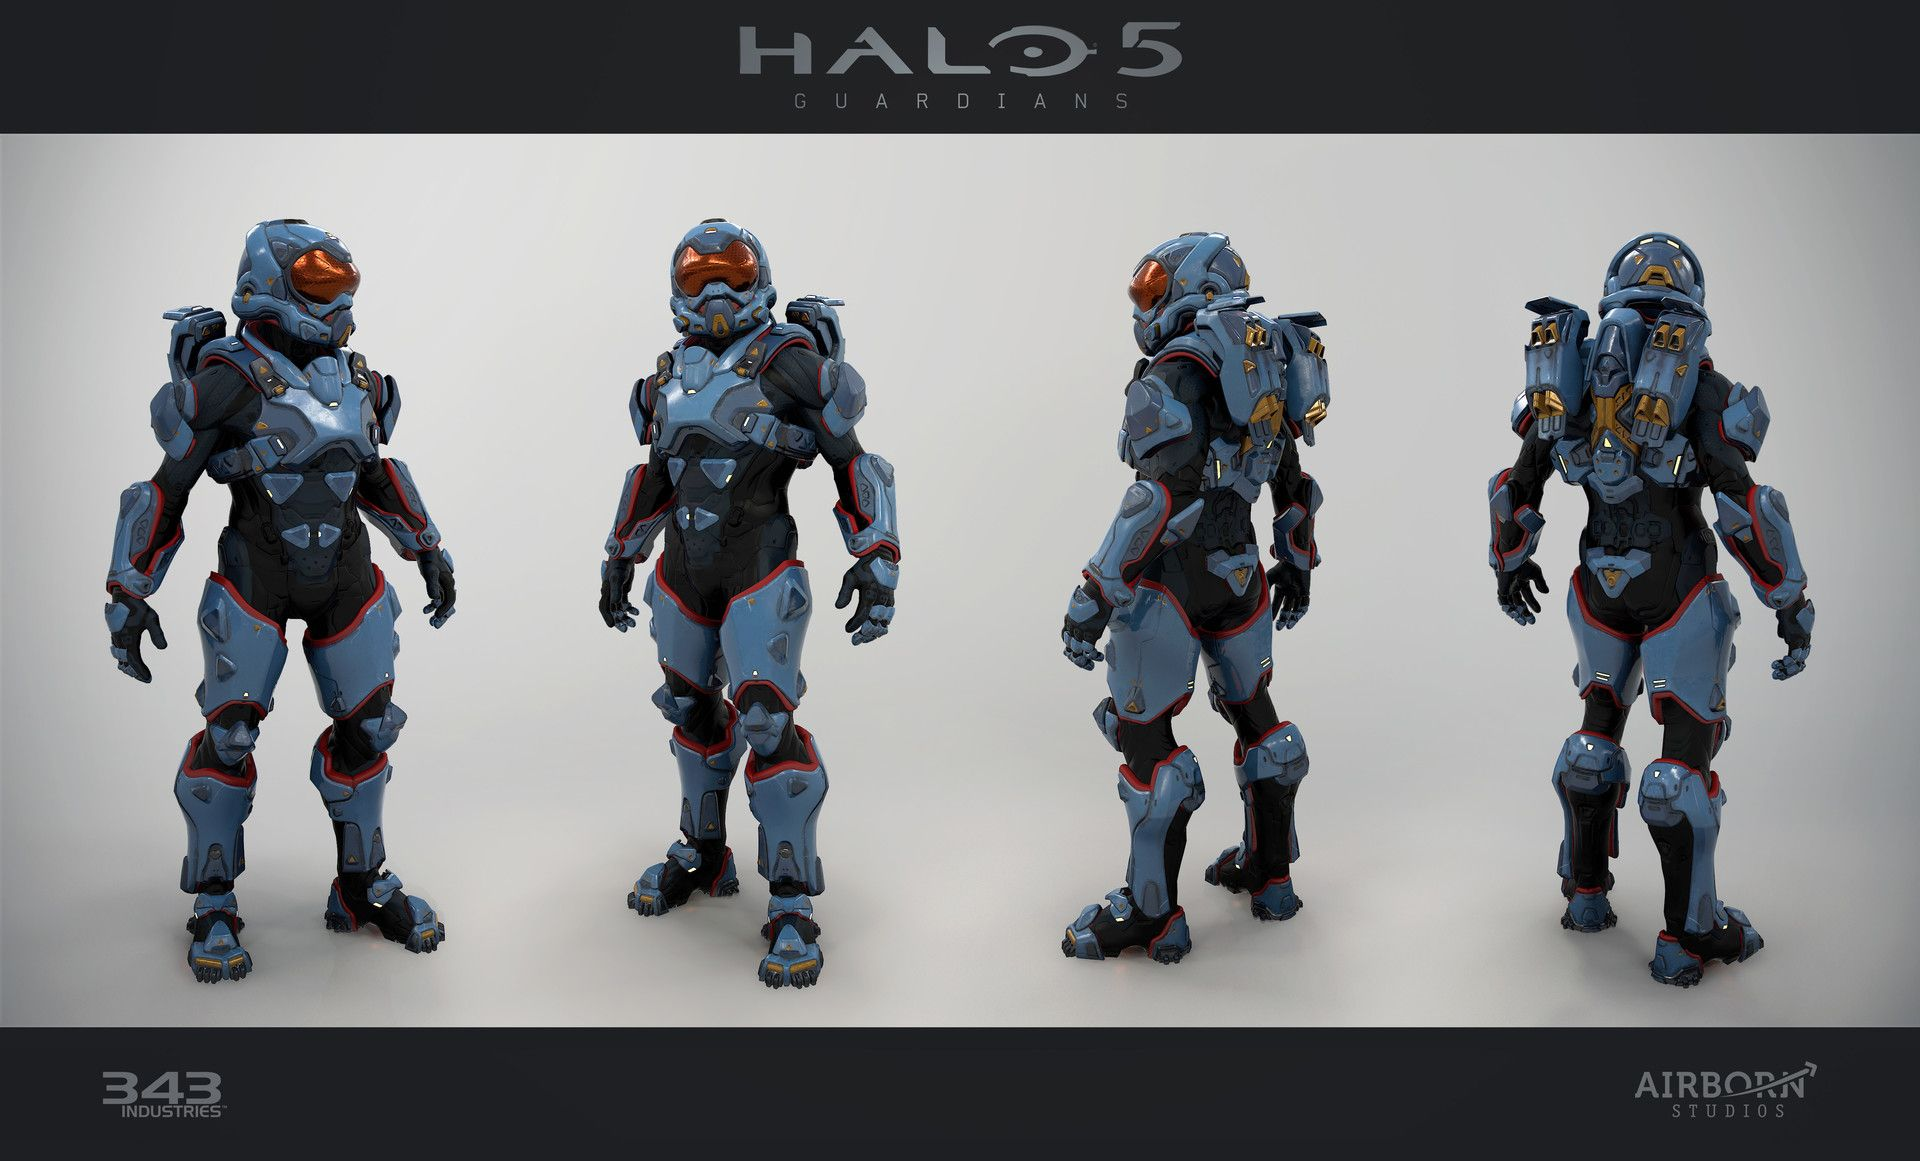 ArtStation - Halo 5 Multiplayer Armor Icarus, Airborn